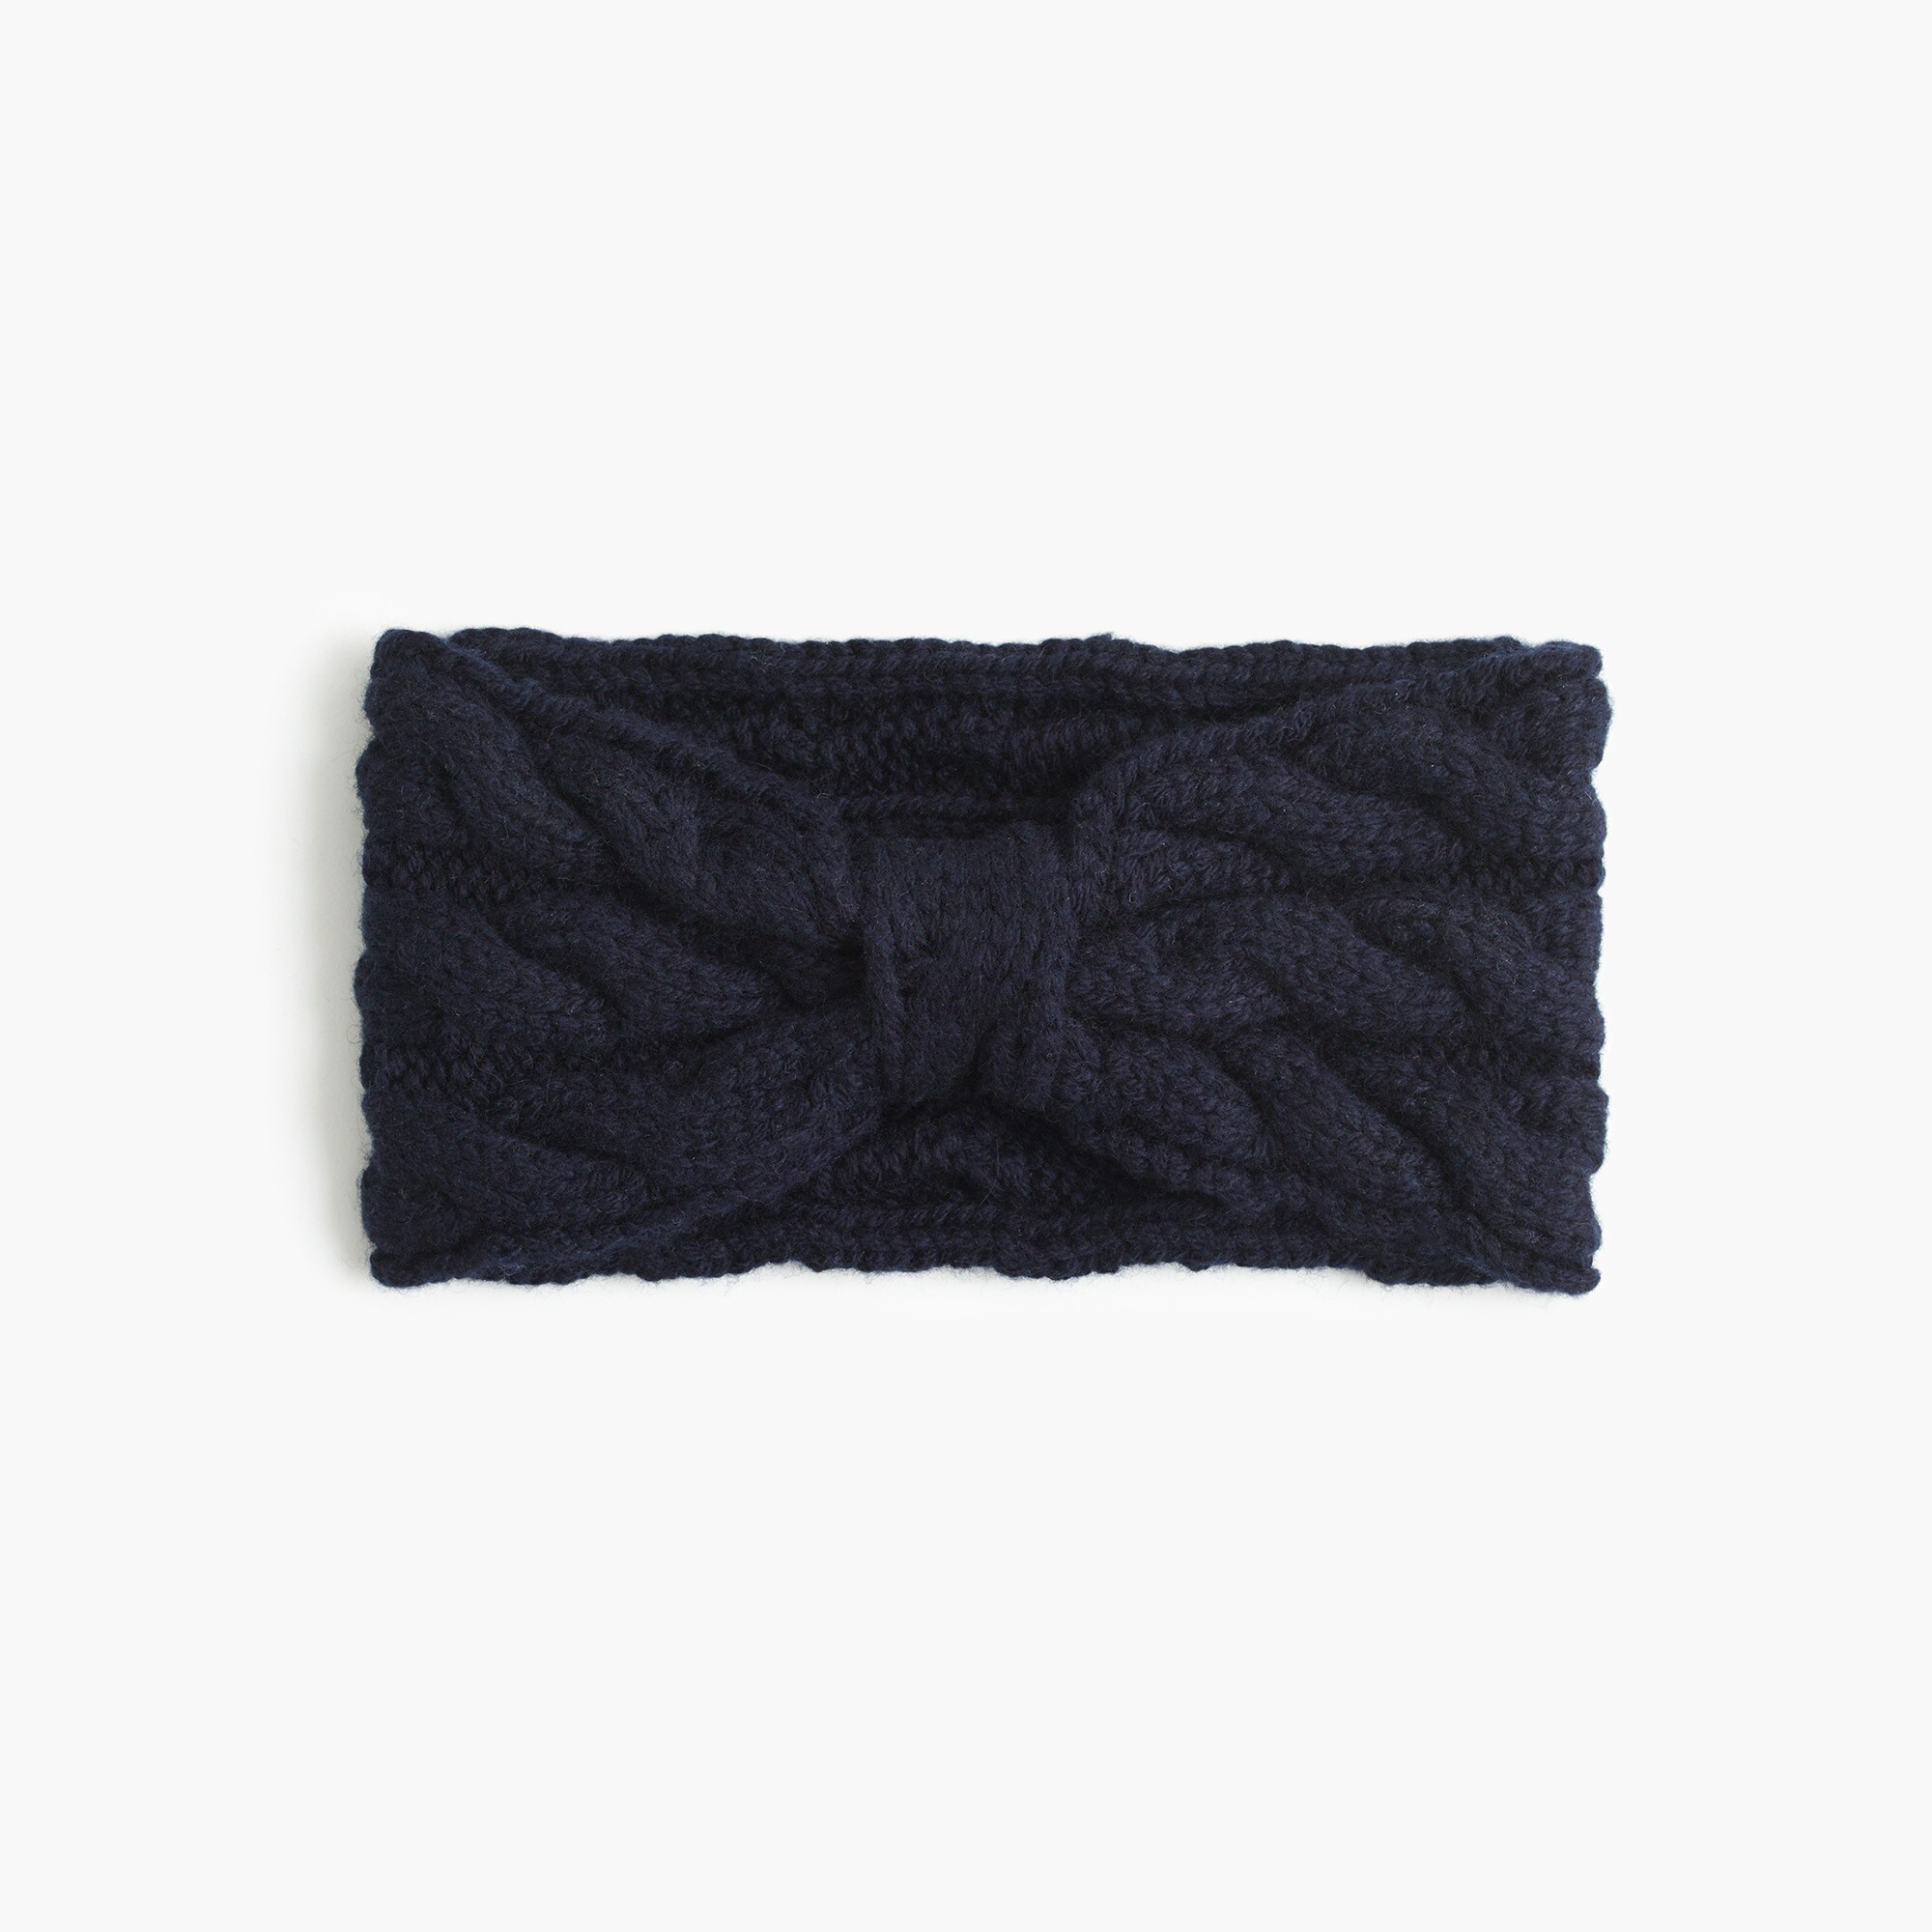 Girls' cable-knit earwarmer